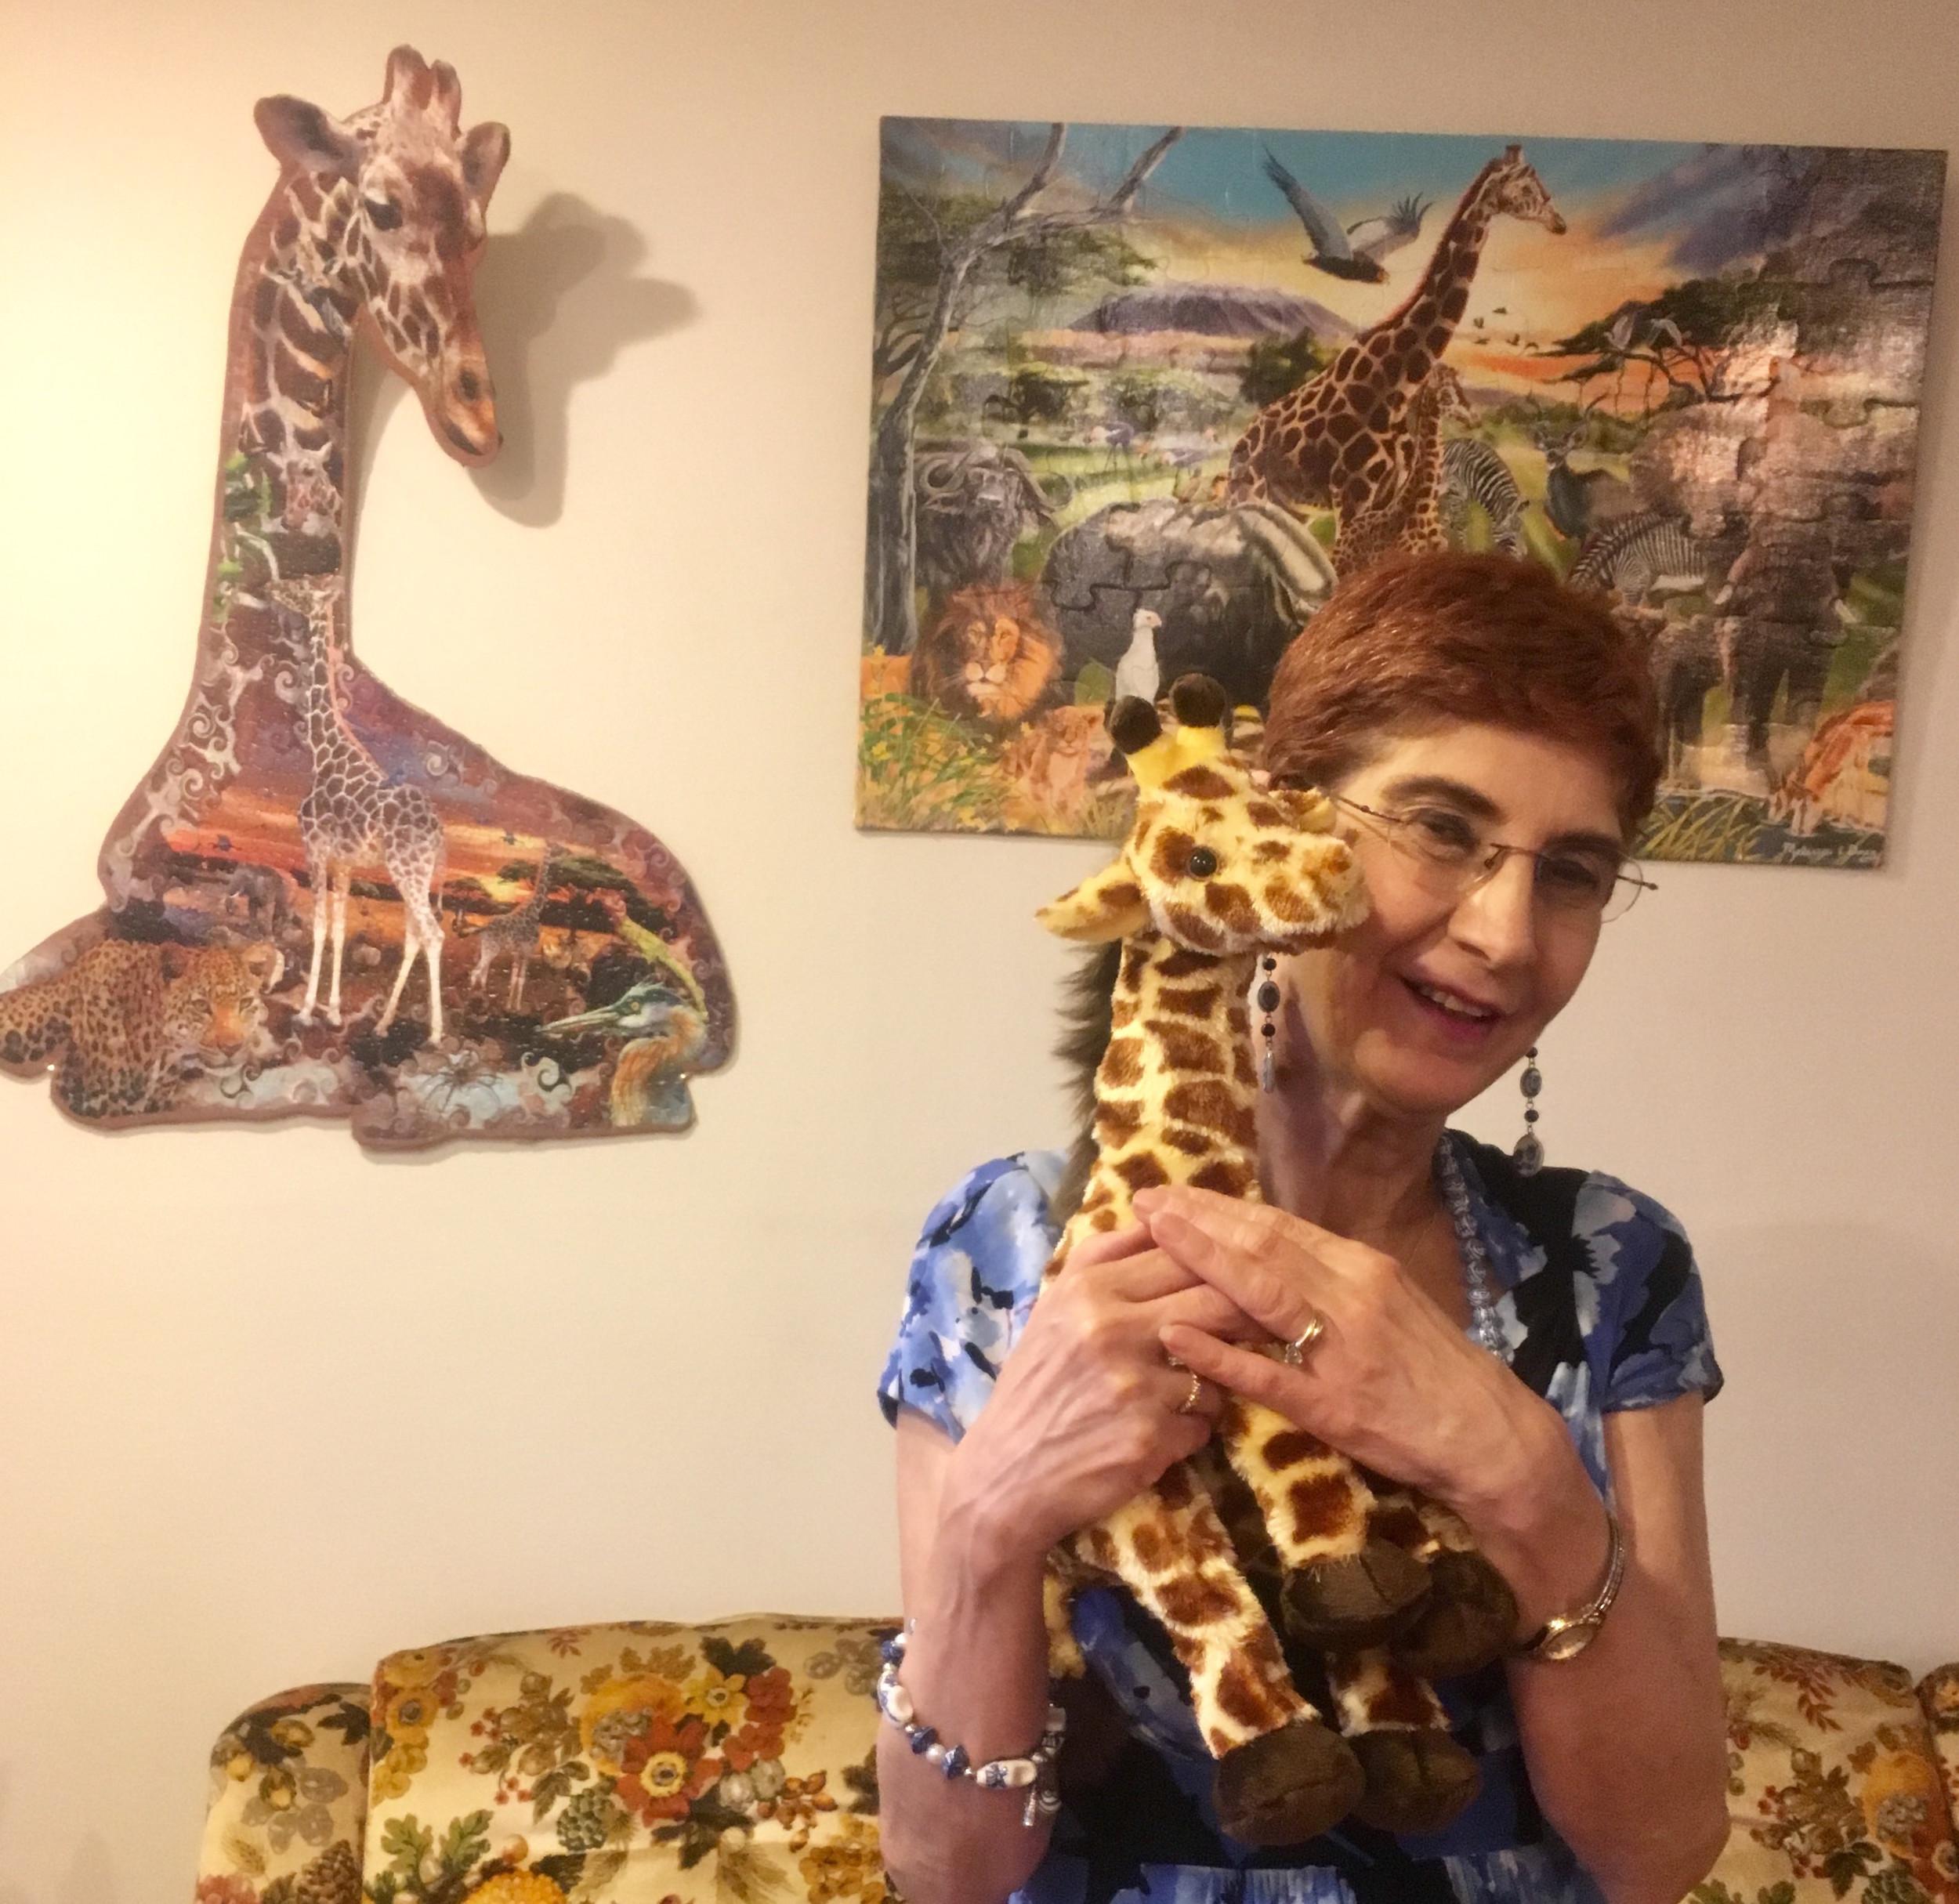 Renée Susman, 63, of Wantagh, has collected more than 500 giraffe-themed items.